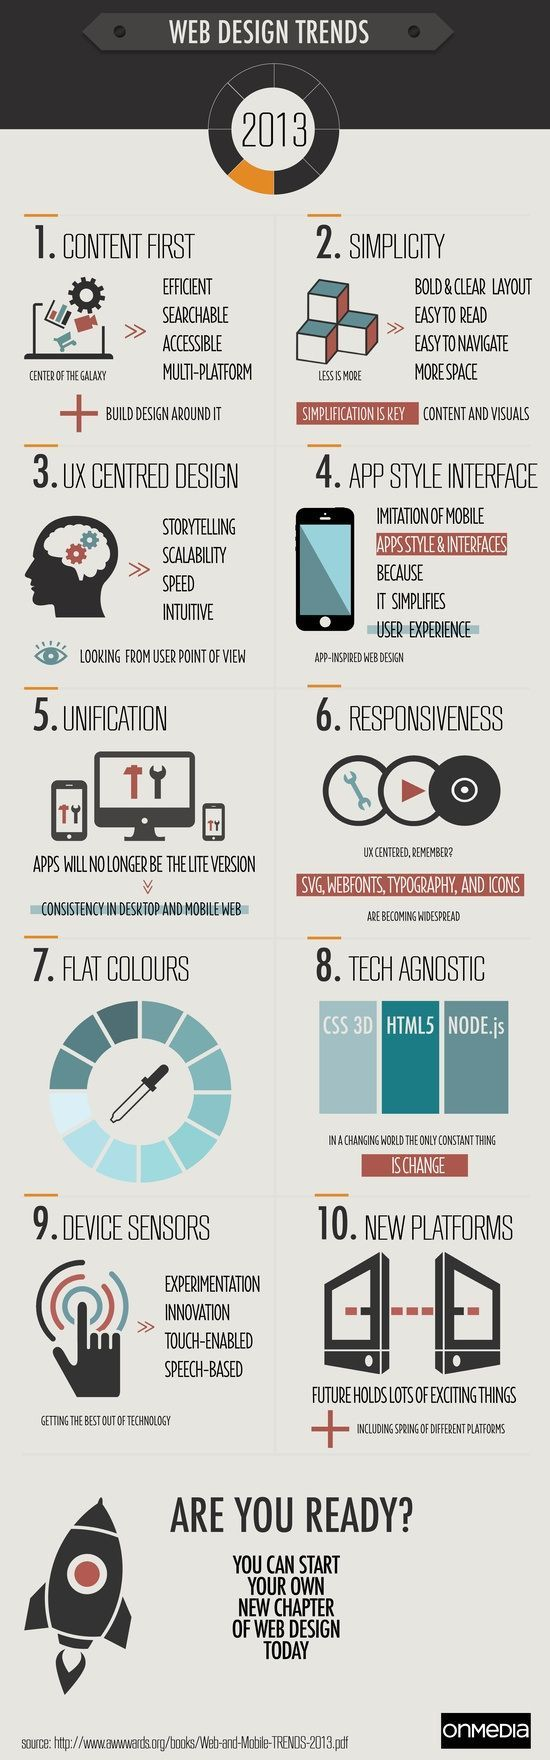 Web Design Trends of 2013